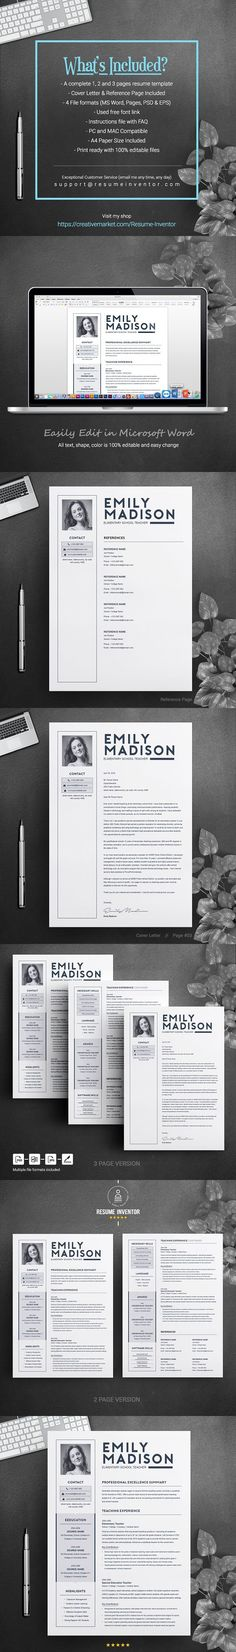 Resume Template Google Docs Resume Design Pinterest Google